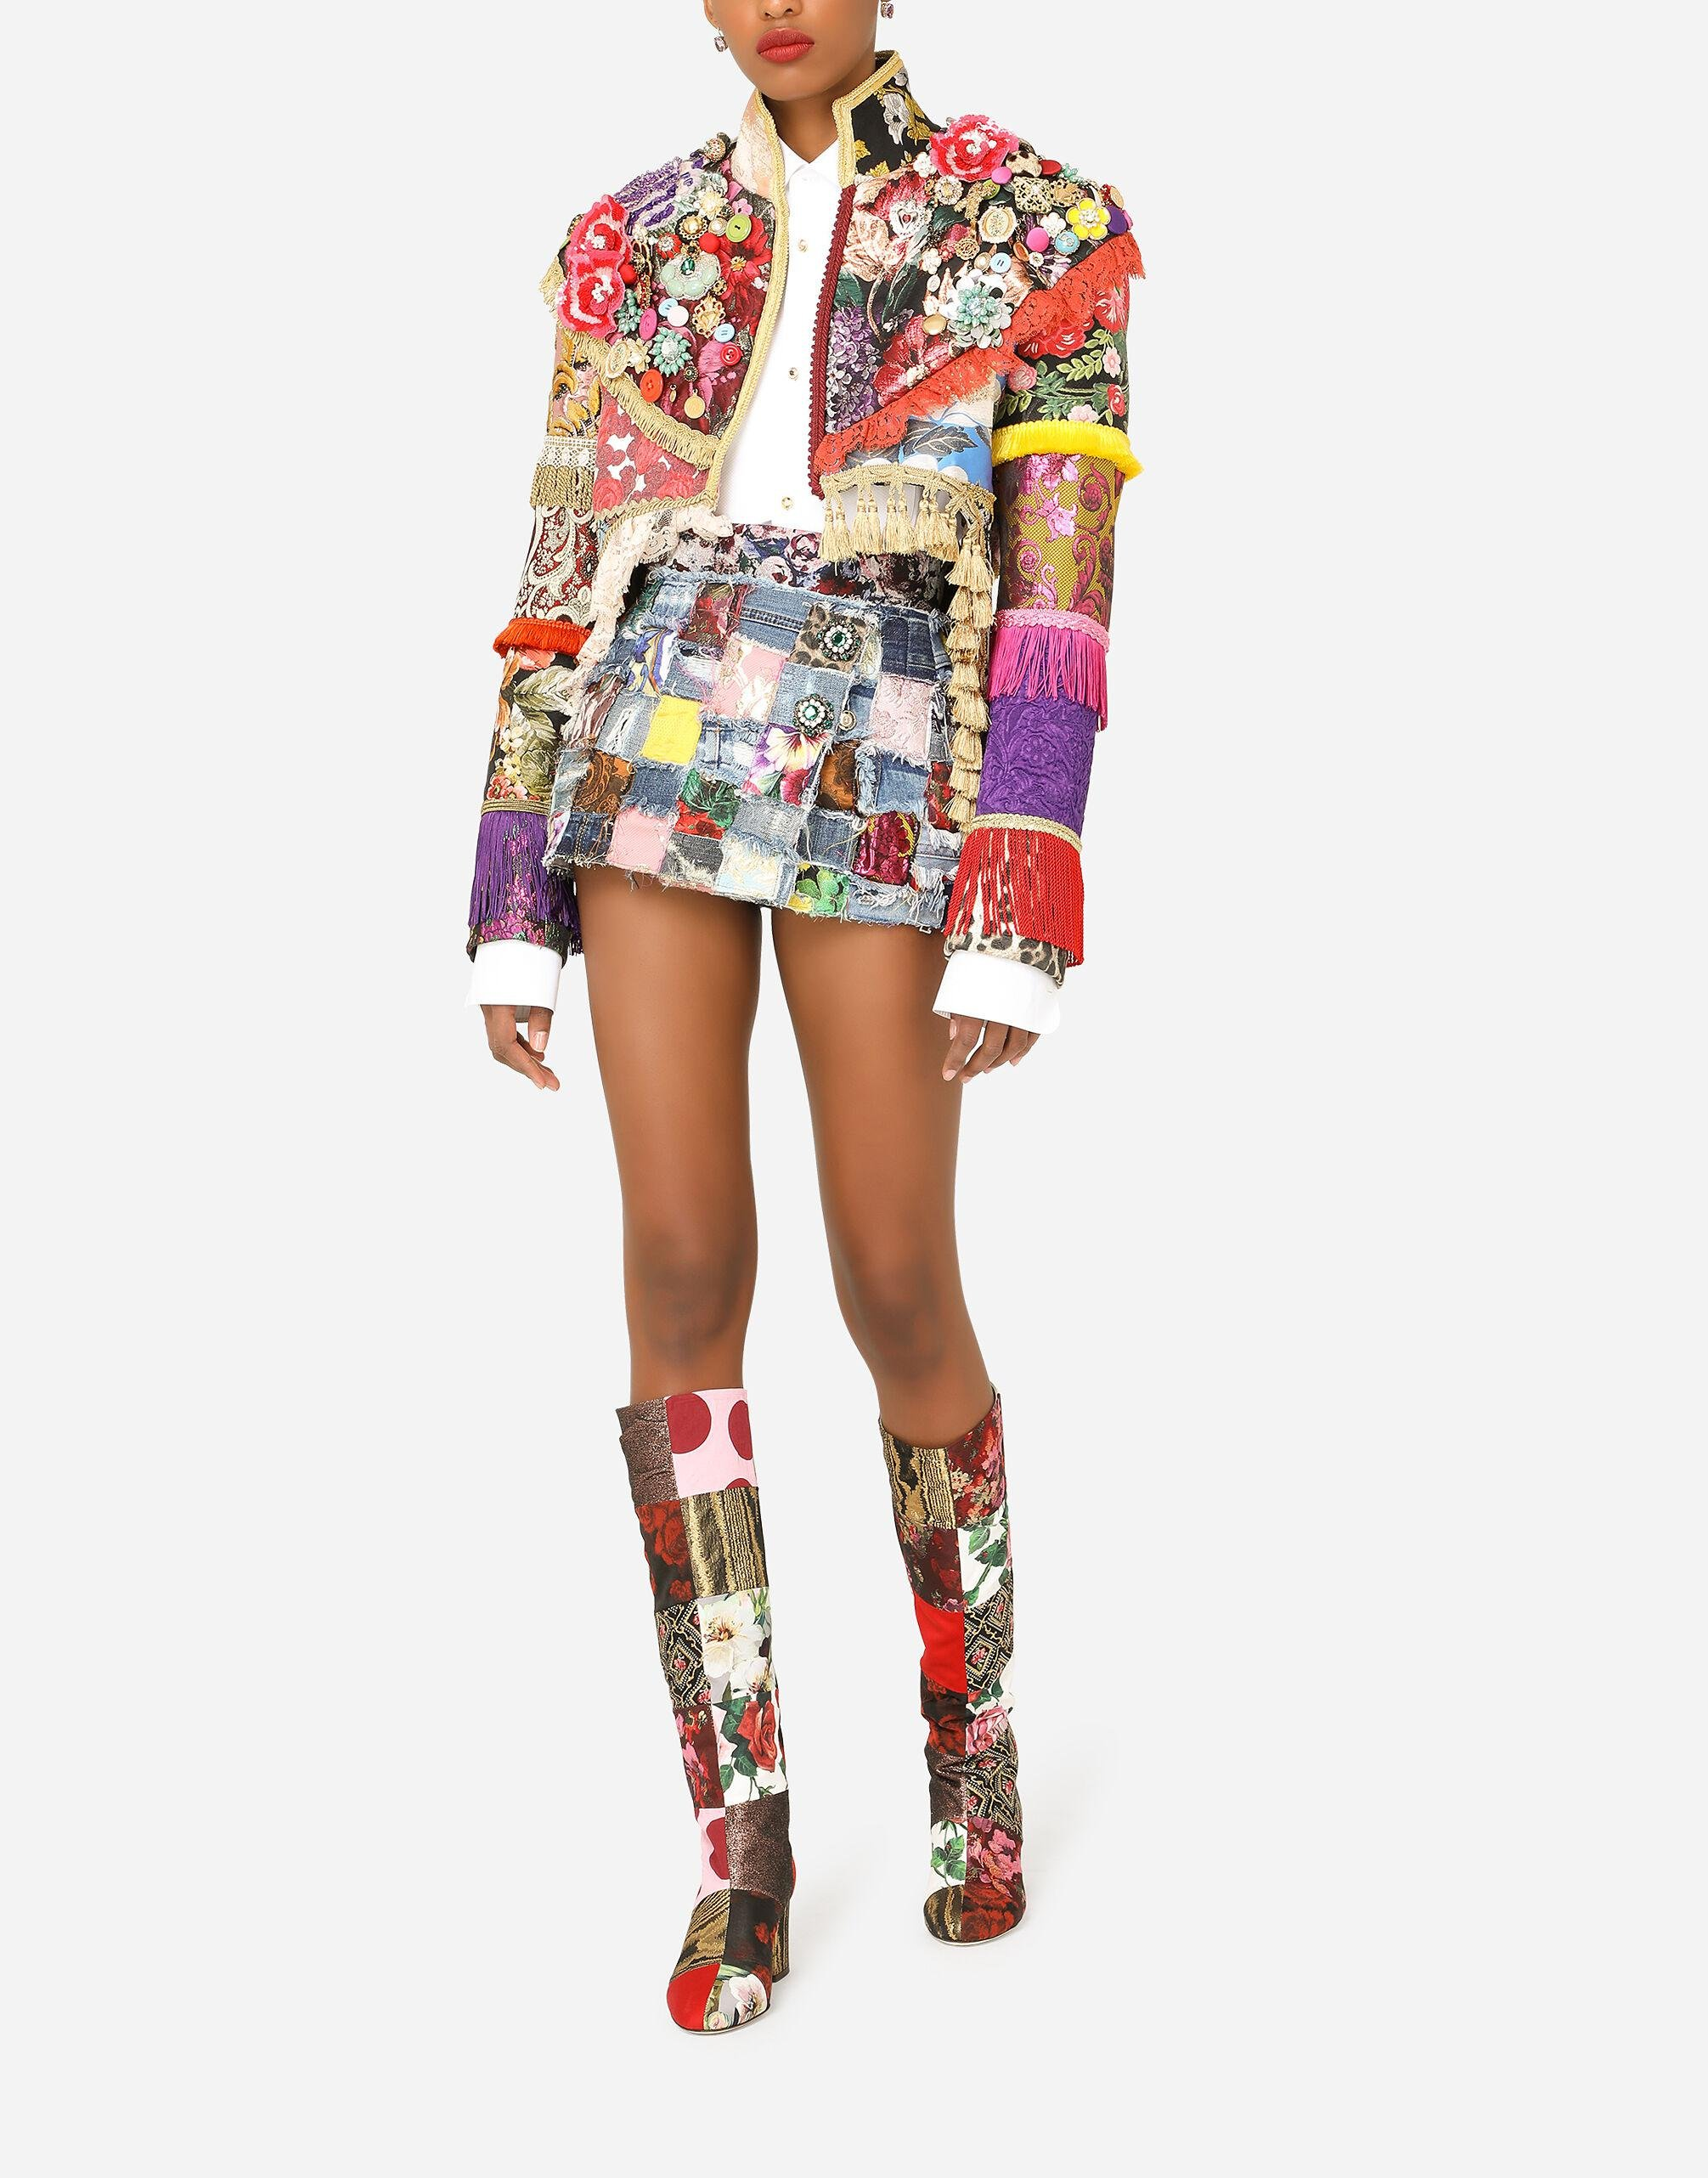 Denim miniskirt with interwoven patchwork detailing and bejeweled buttons 3